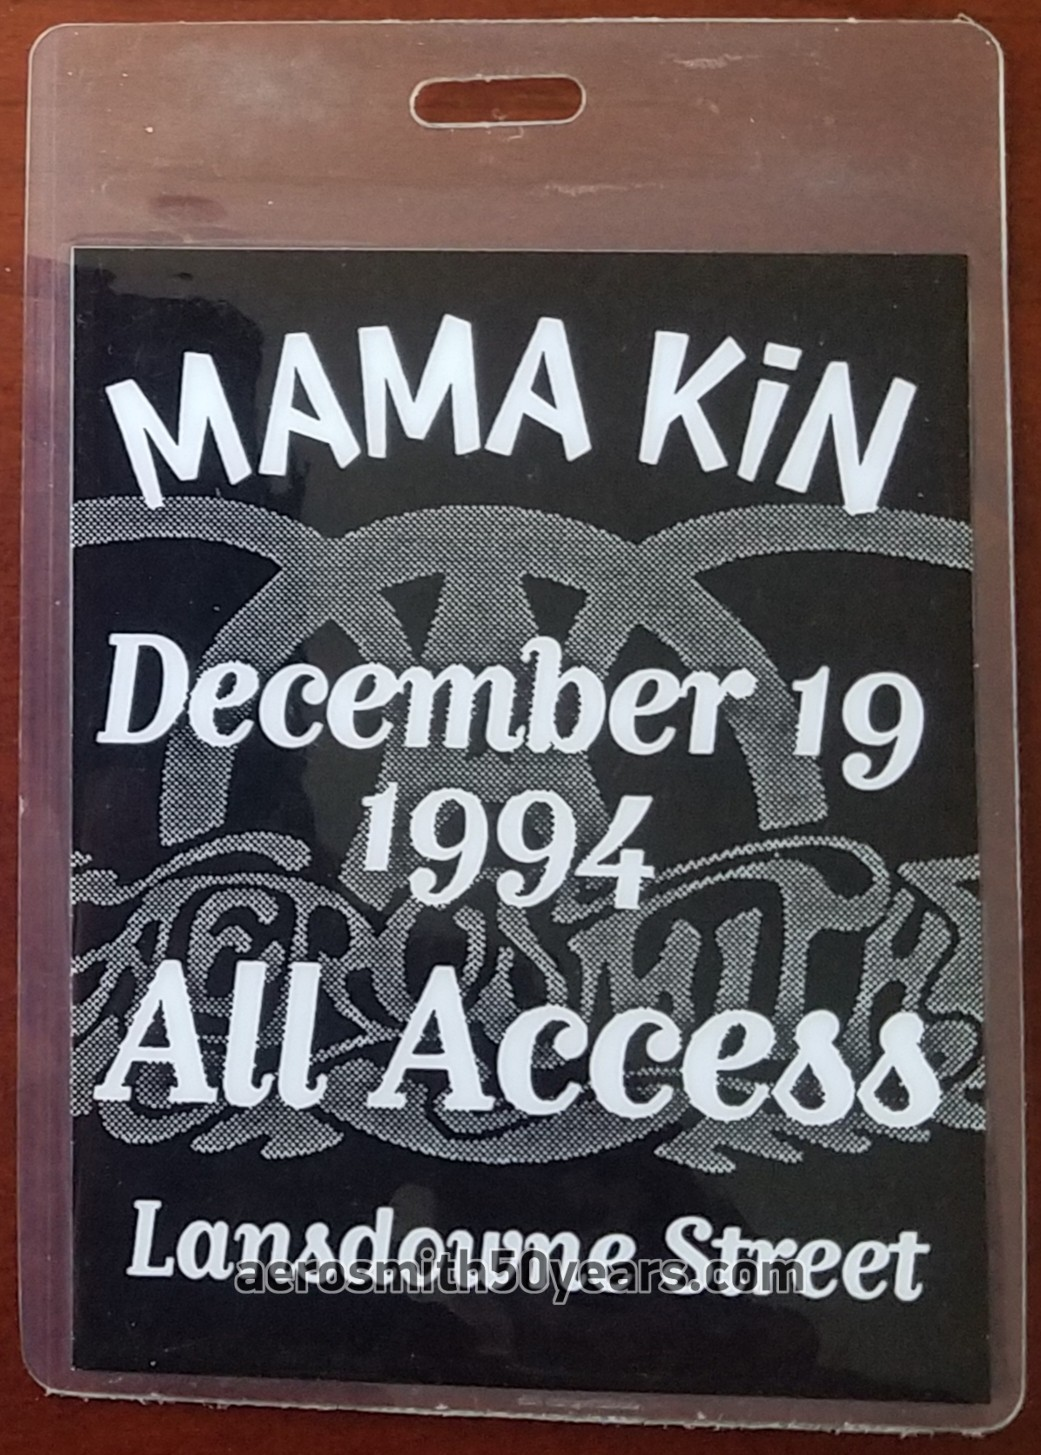 Mama Kin Club- Opening Night Concert December 19th, 1994. Tracy Bonham opened the show. The Aerosmith performance was broadcast live. This is the original laminate pass used that night.